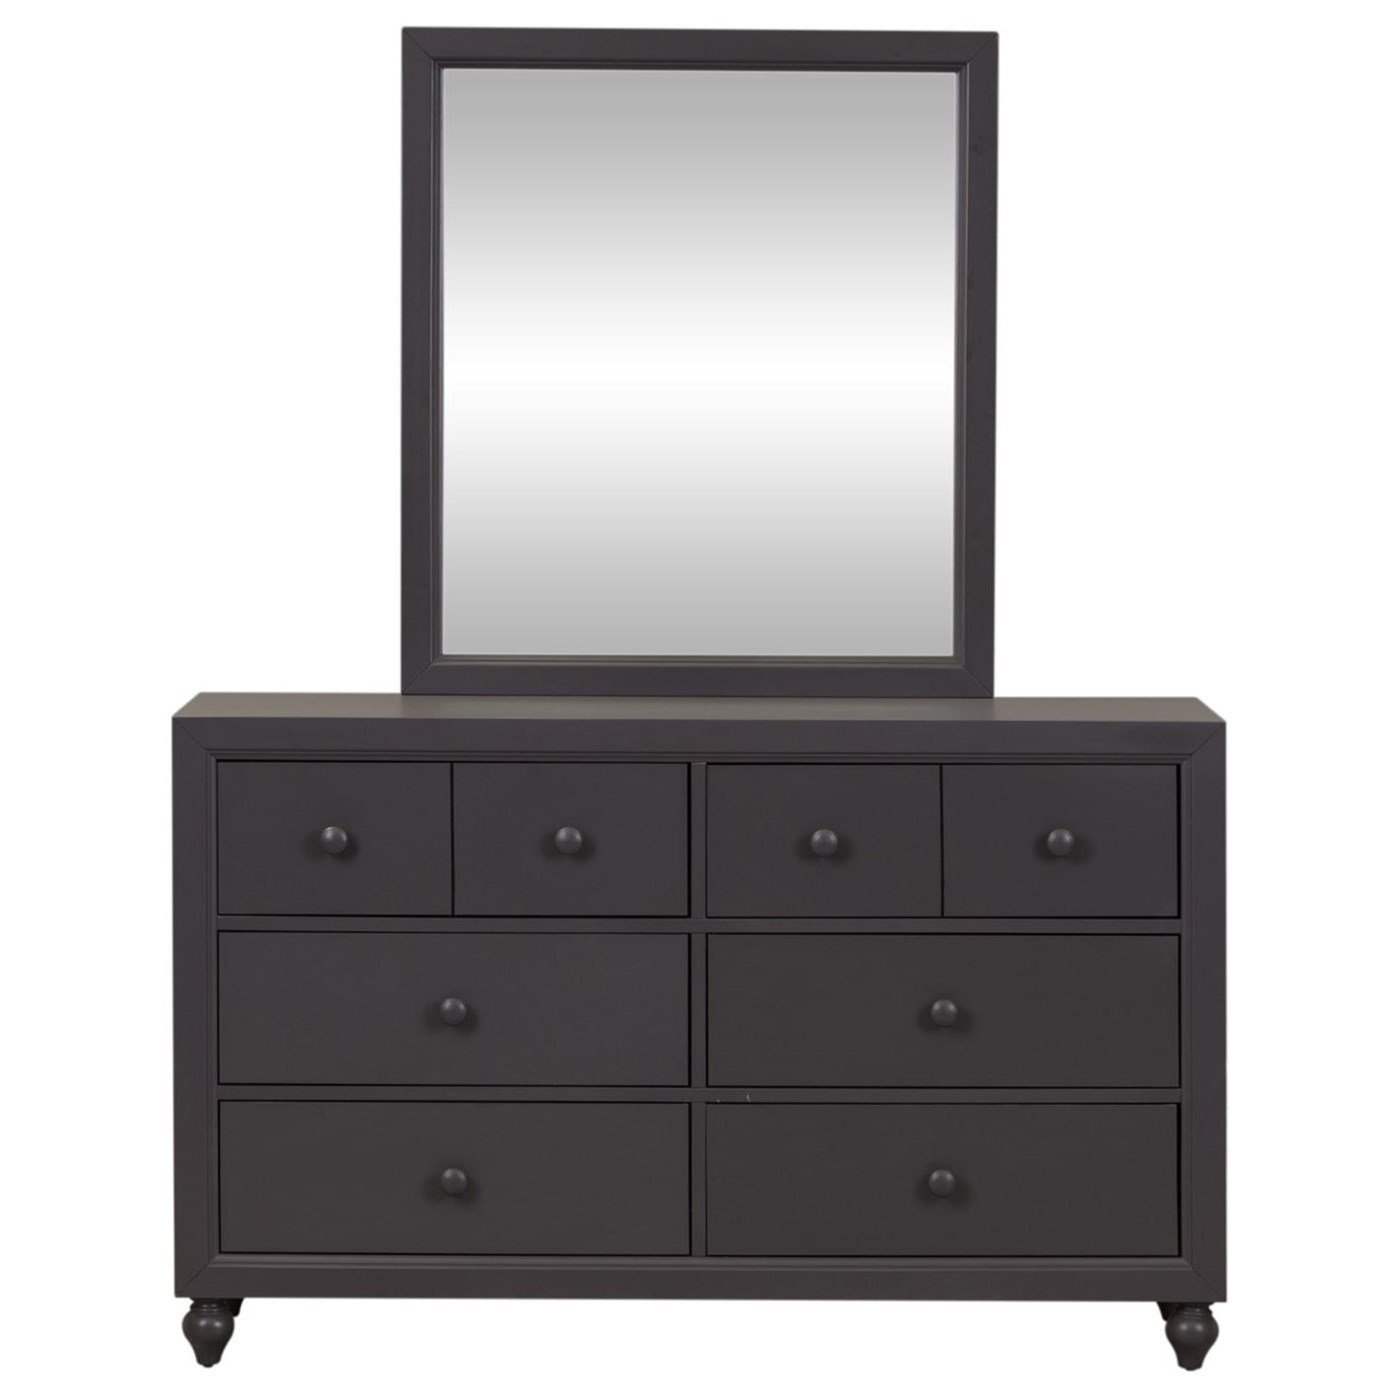 Cottage View Dresser and Mirror by Liberty Furniture at Northeast Factory Direct